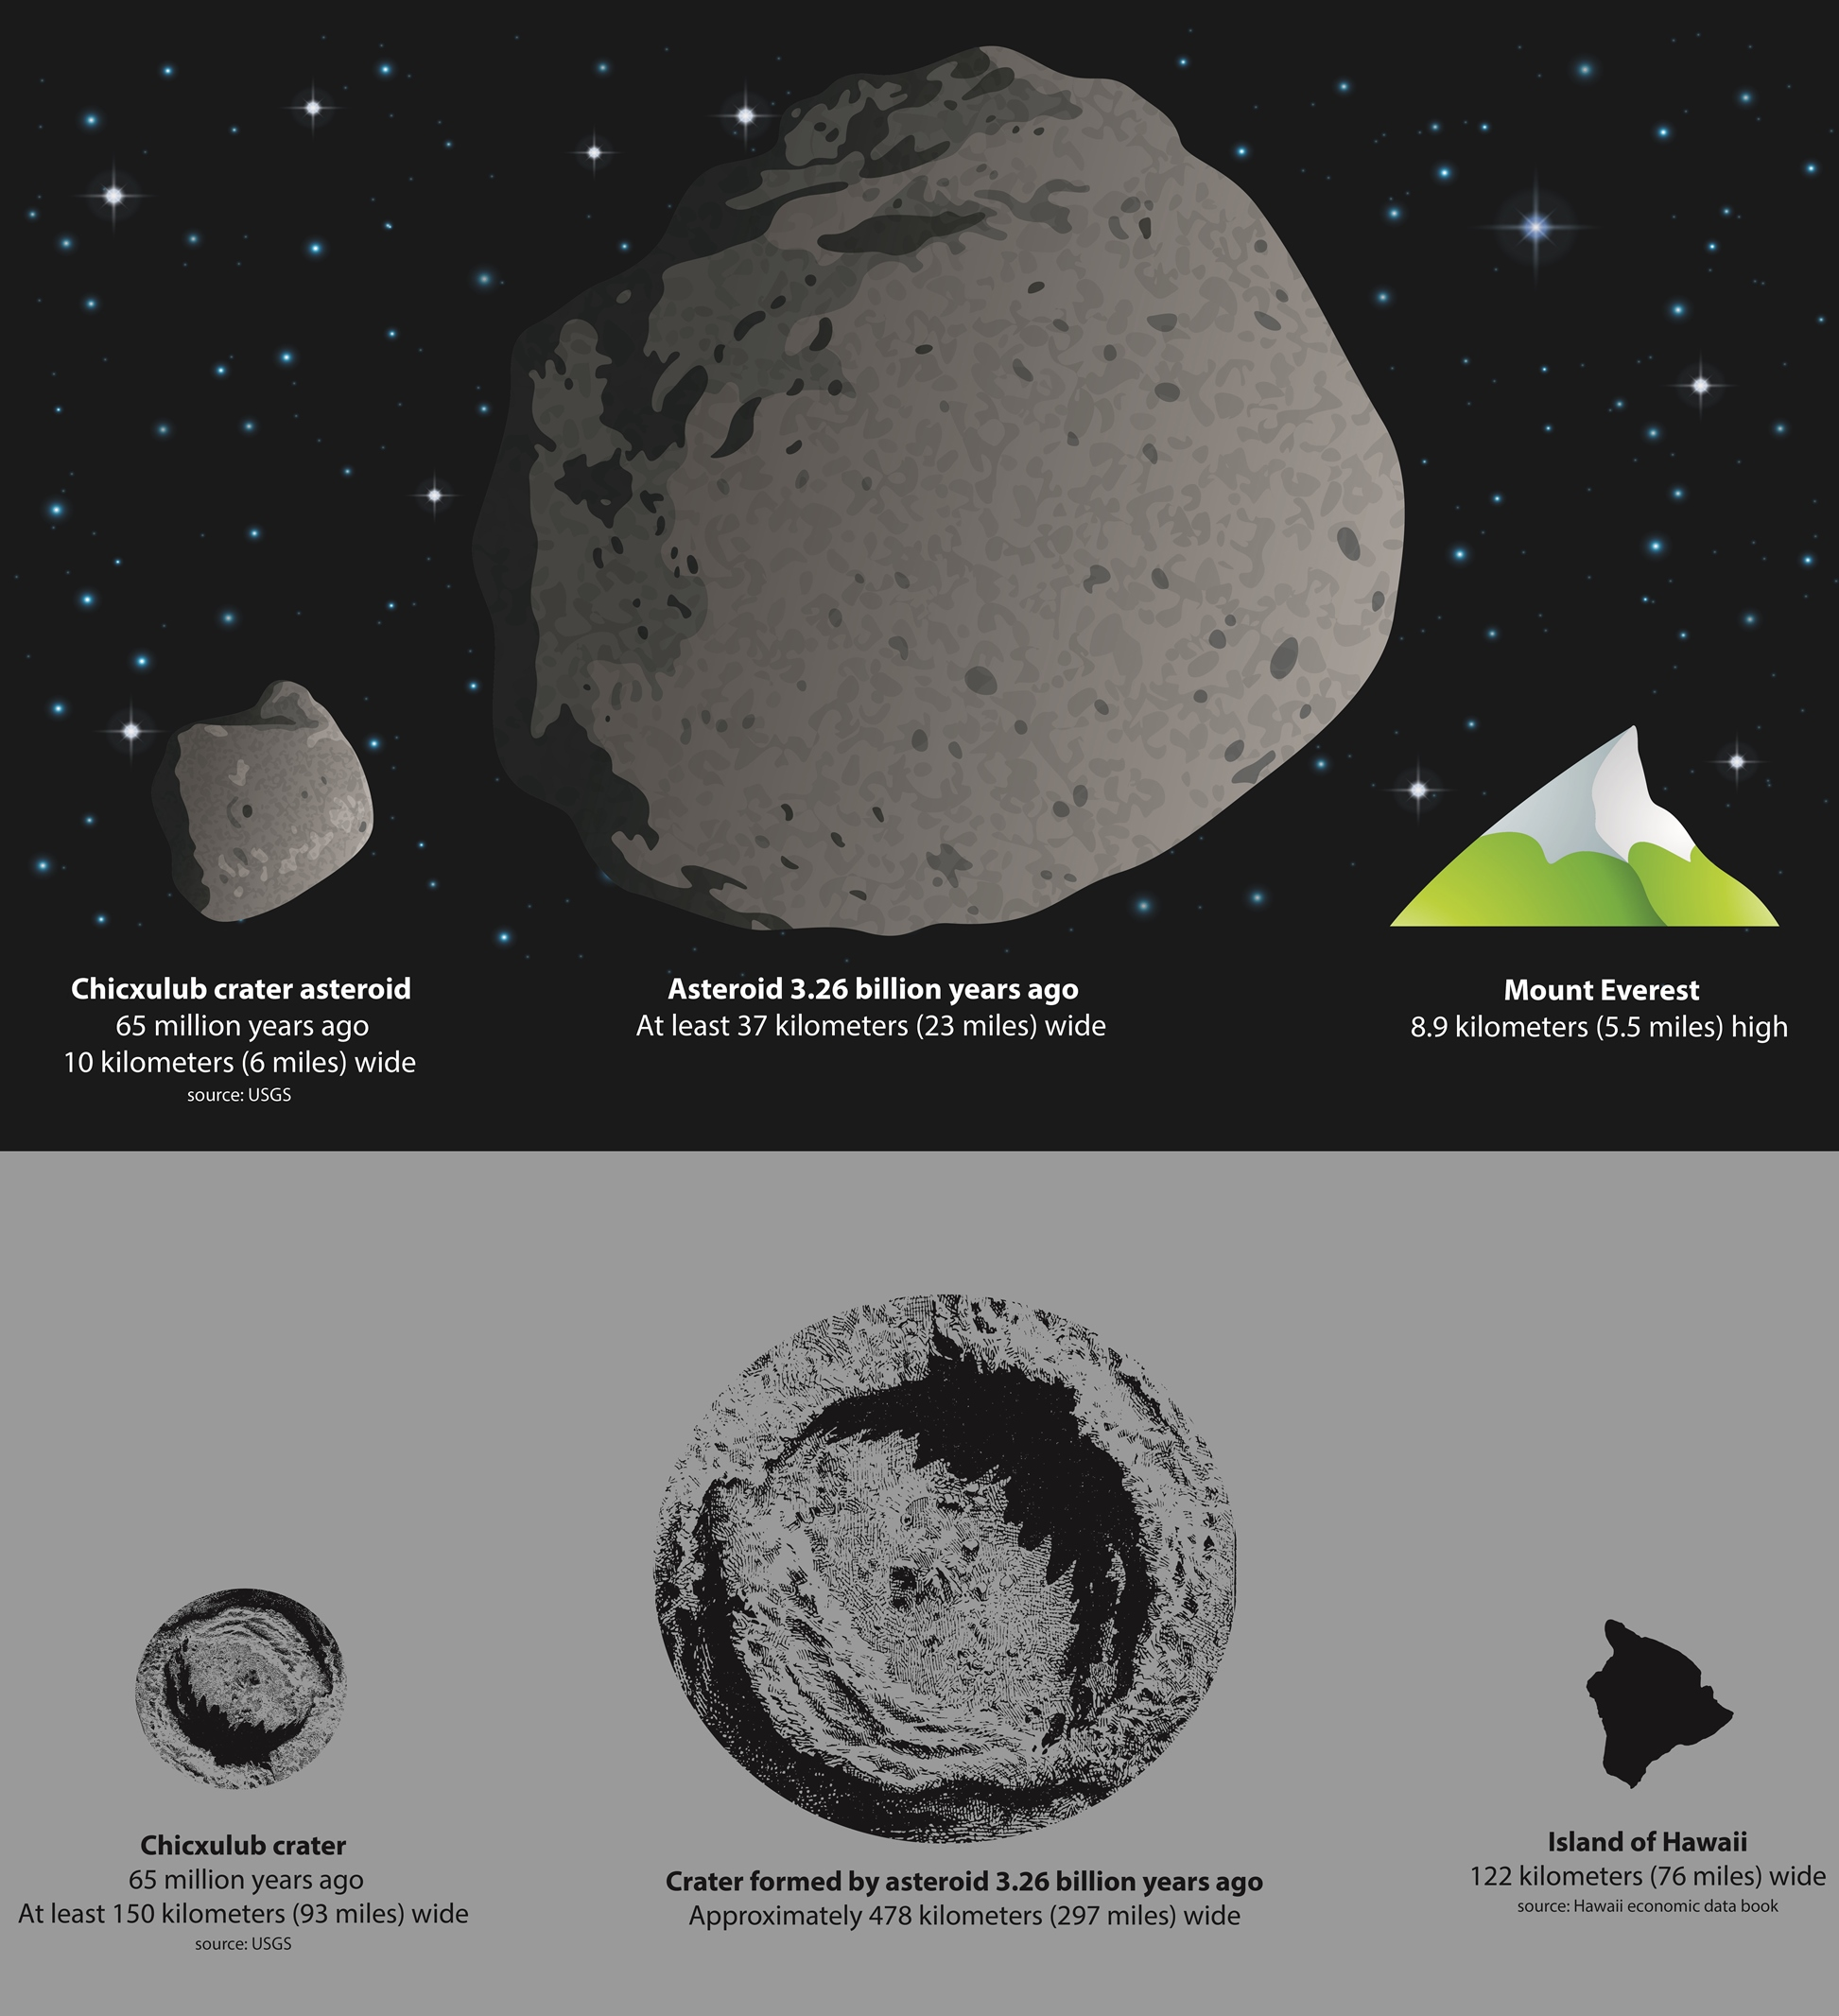 A graphical representation of the size of the asteroid thought to have killed the dinosaurs, and the crater it created, compared to an asteroid thought to have hit the Earth 3.26 billion years ago and the size of the crater it may have generated. A new study reveals the power and scale of the event some 3.26 billion years ago which scientists think created geological features found in a South African region known as the Barberton greenstone belt.